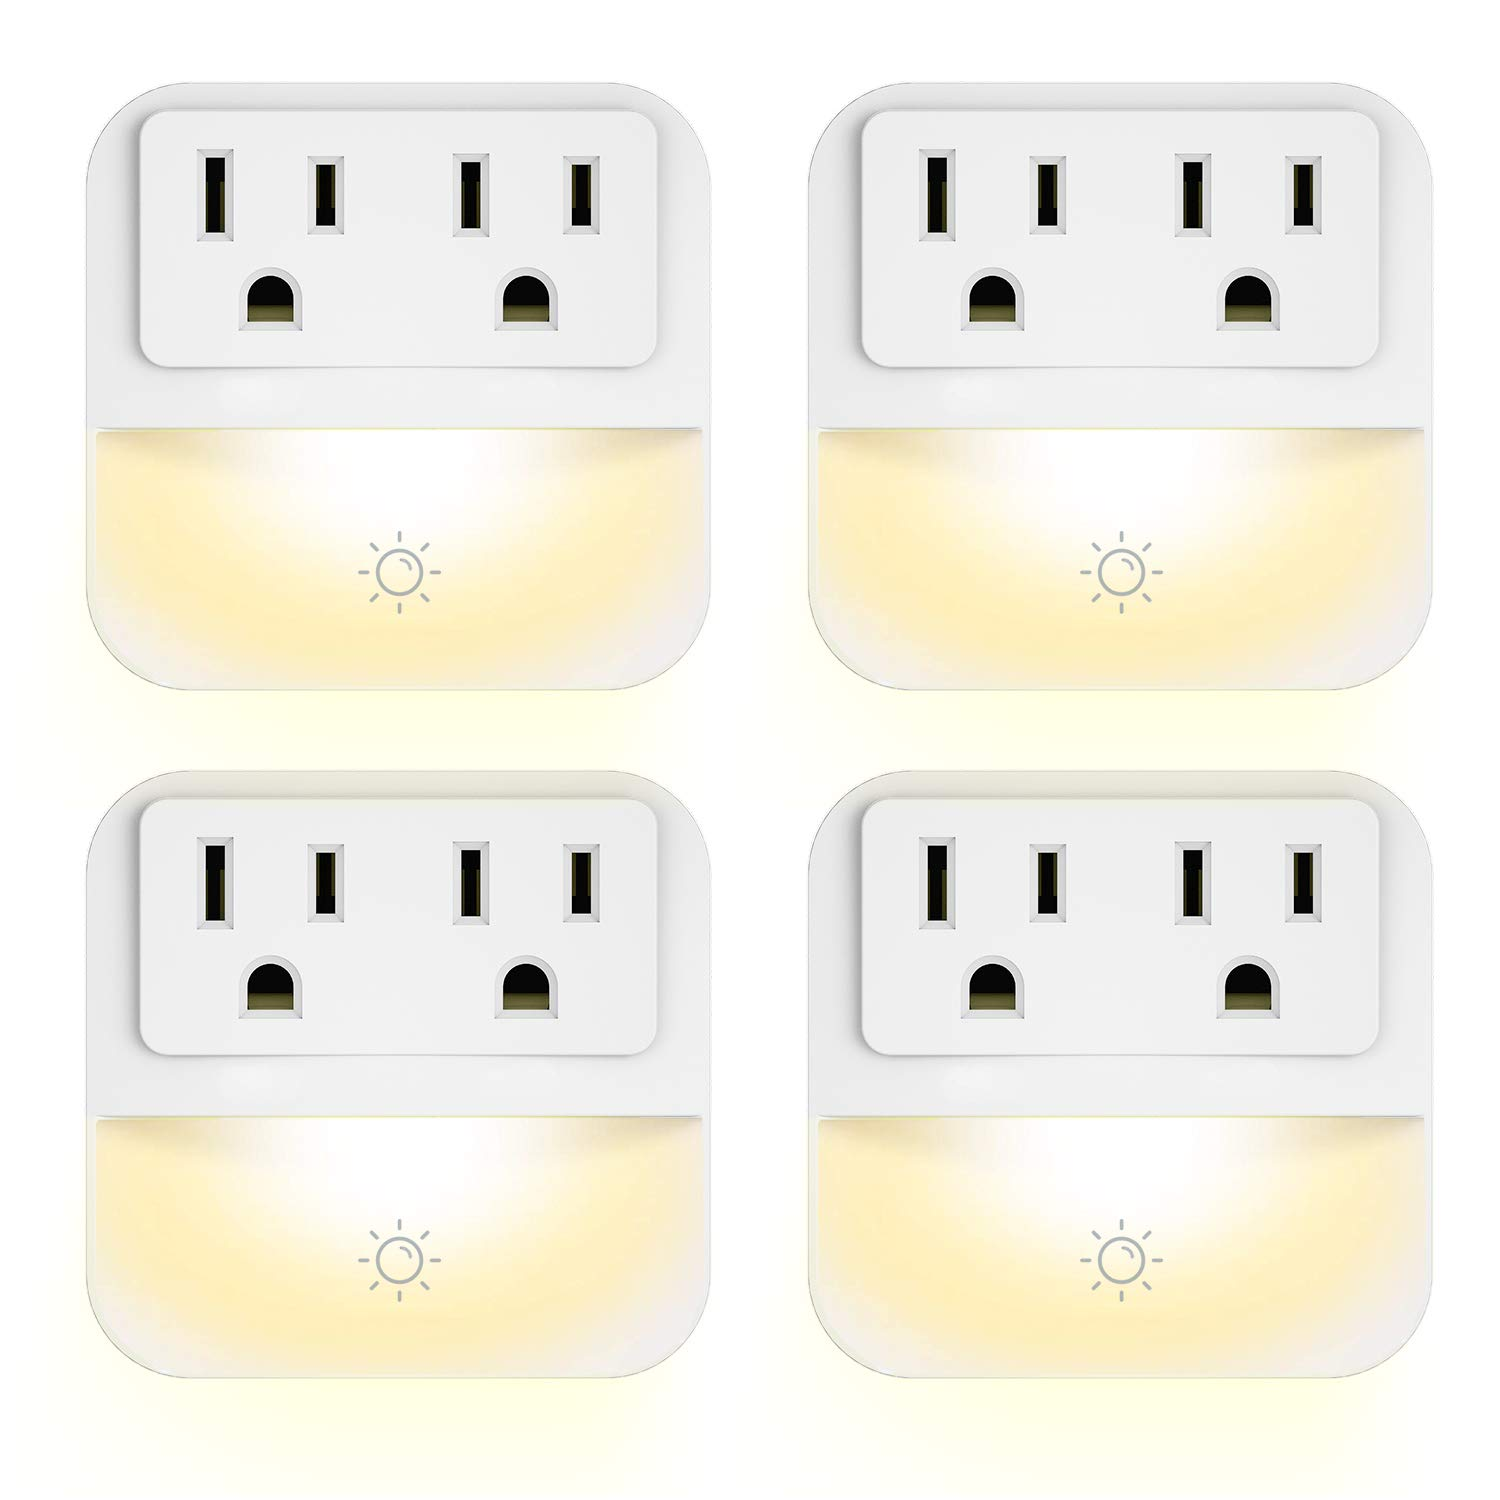 Plug-in Night Light with 2-Outlet Extender, POWRUI Warm White LED Nightlight with Dusk-to-Dawn Sensor for Bedroom, Bathroom, Kitchen, Hallway, Stairs, 4-Pack by POWRUI